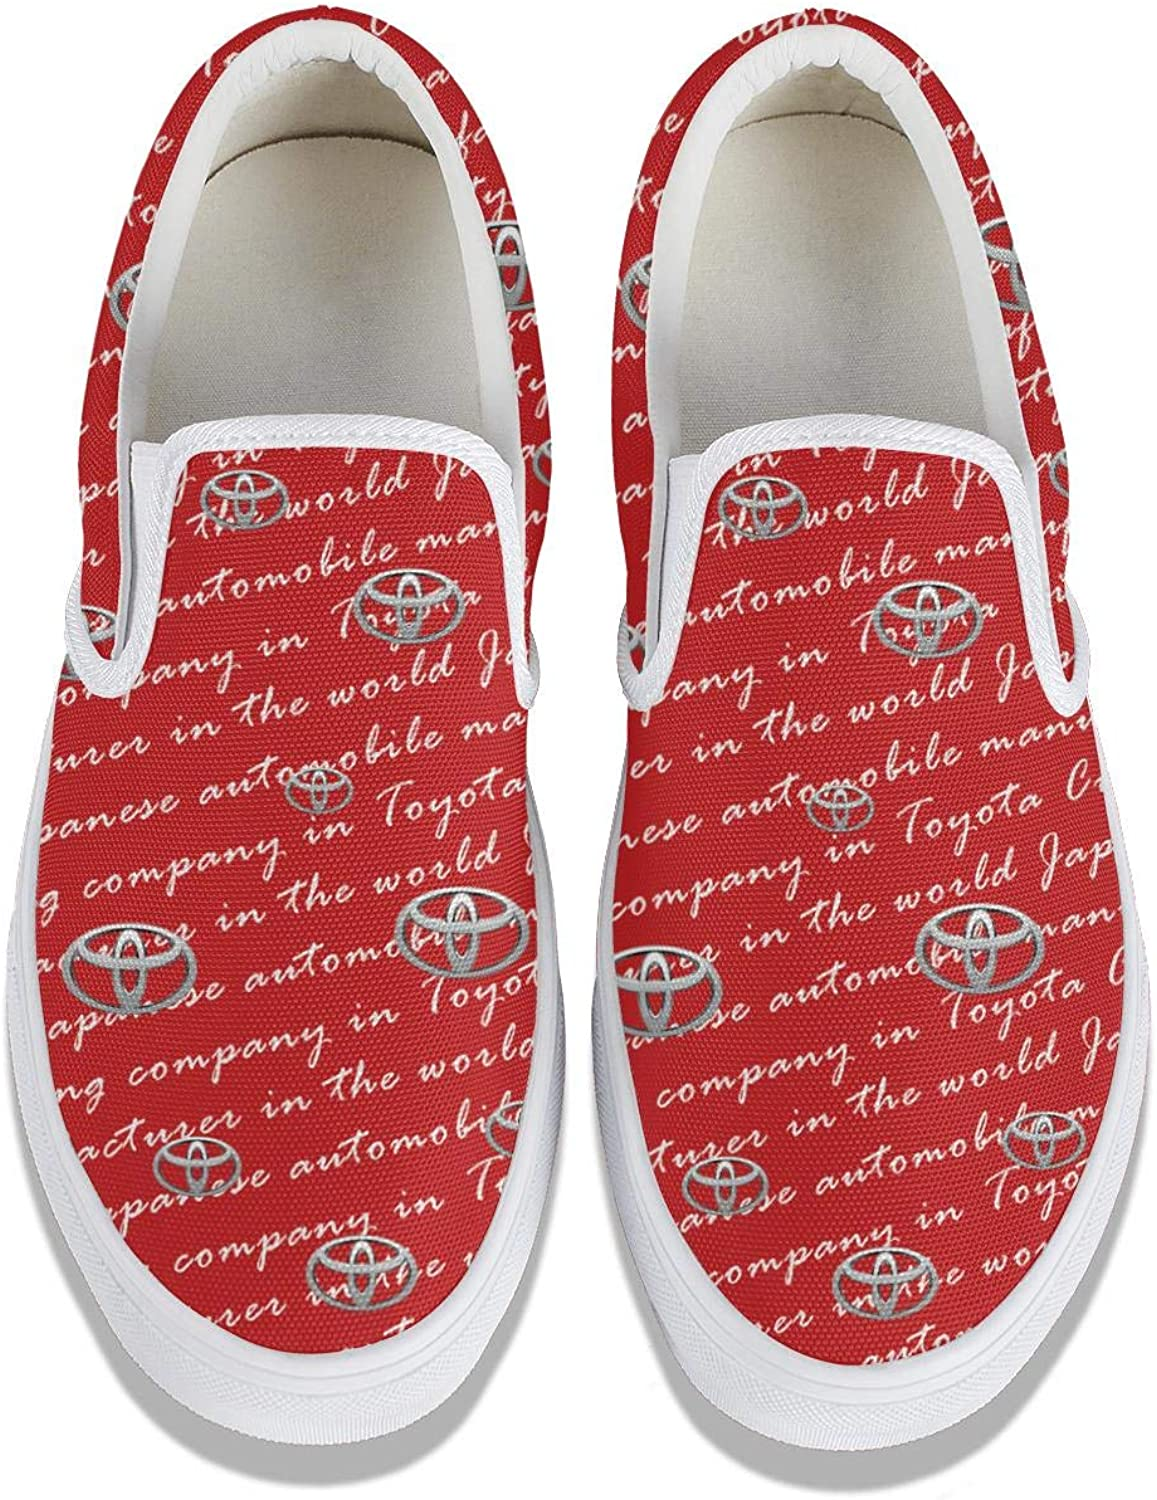 Womens Canvas Shoes Style -dealership